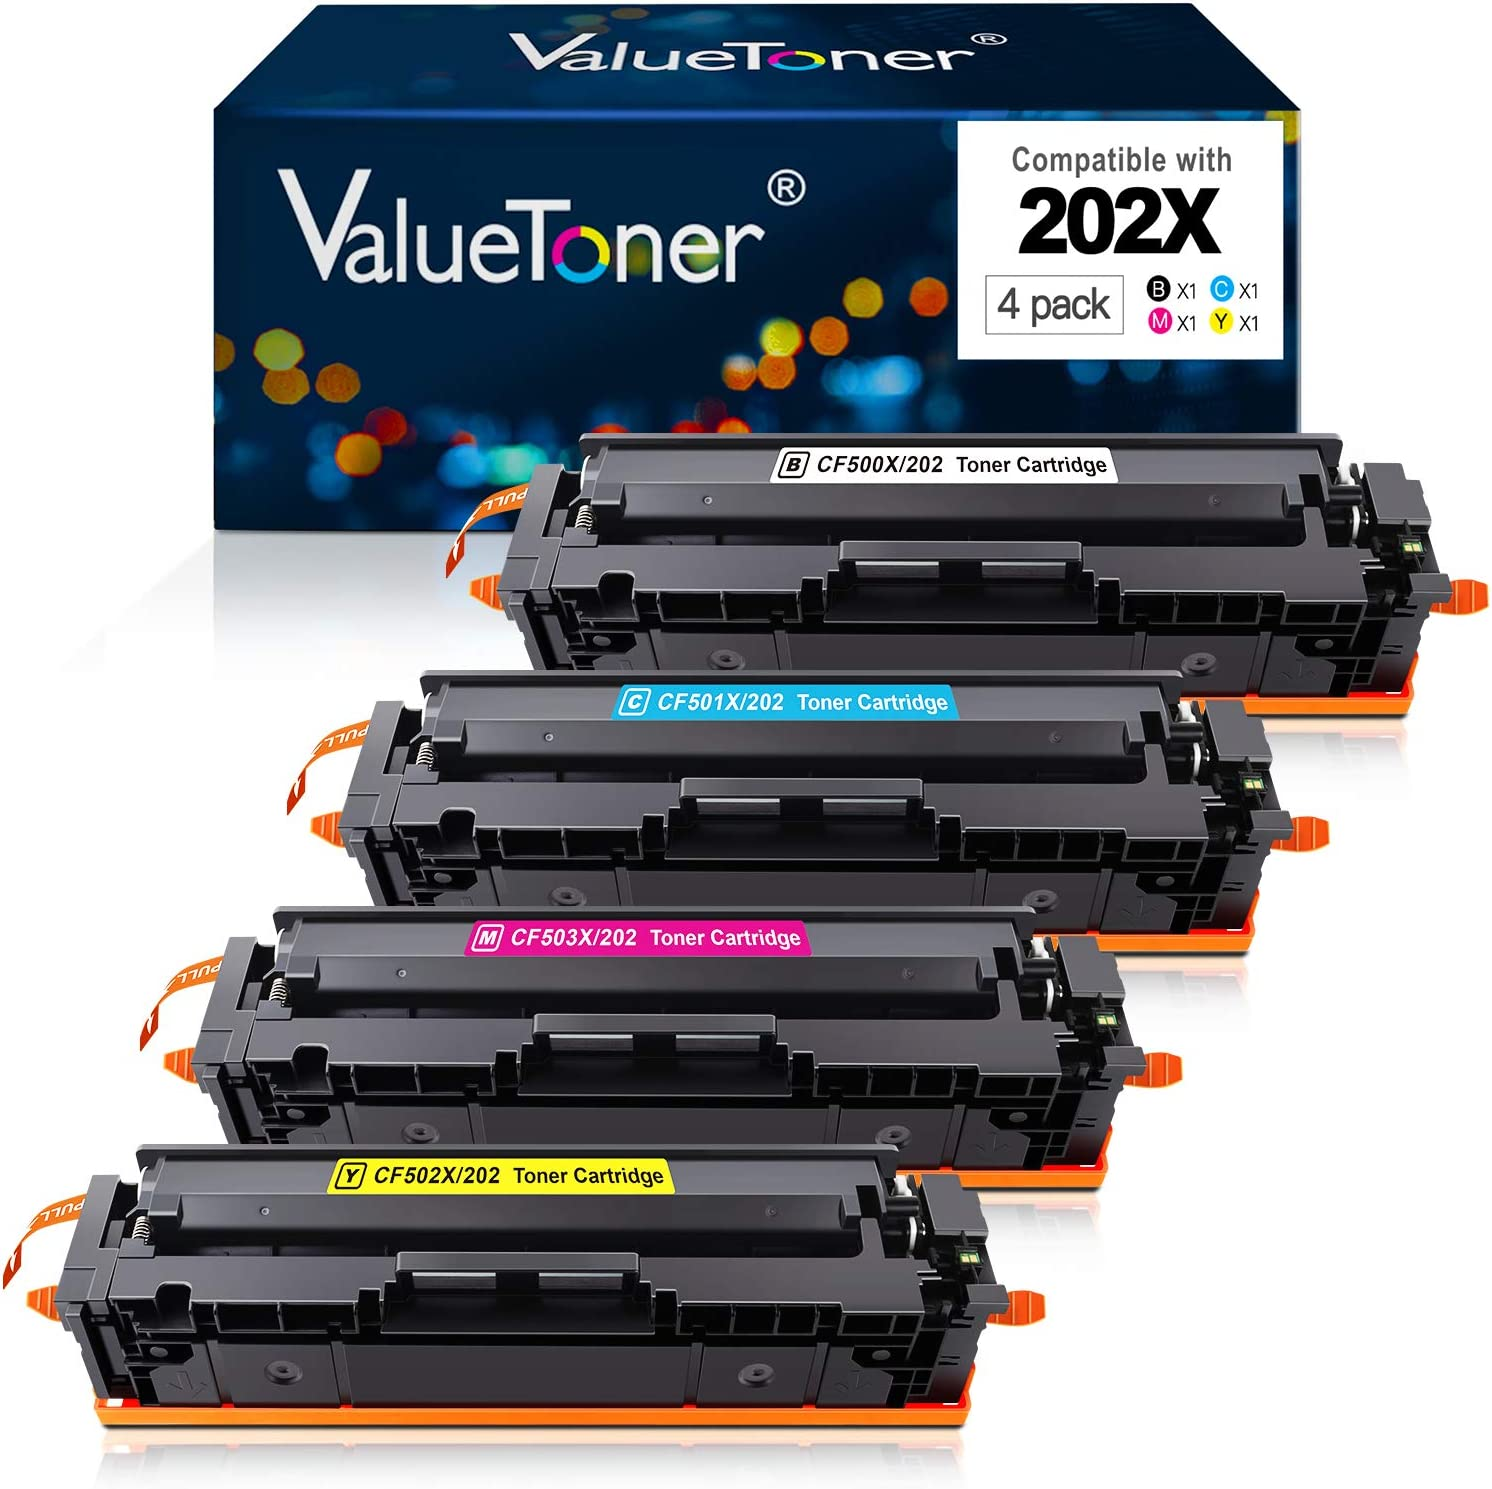 Valuetoner Compatible Toner Cartridge Replacement for HP 202X 202A CF500X CF500A Used with Laserjet Pro MFP M281fdw M254dw M281cdw M281dw Printer (1 Black, 1 Cyan, 1 Magenta, 1 Yellow, 4-Pack)